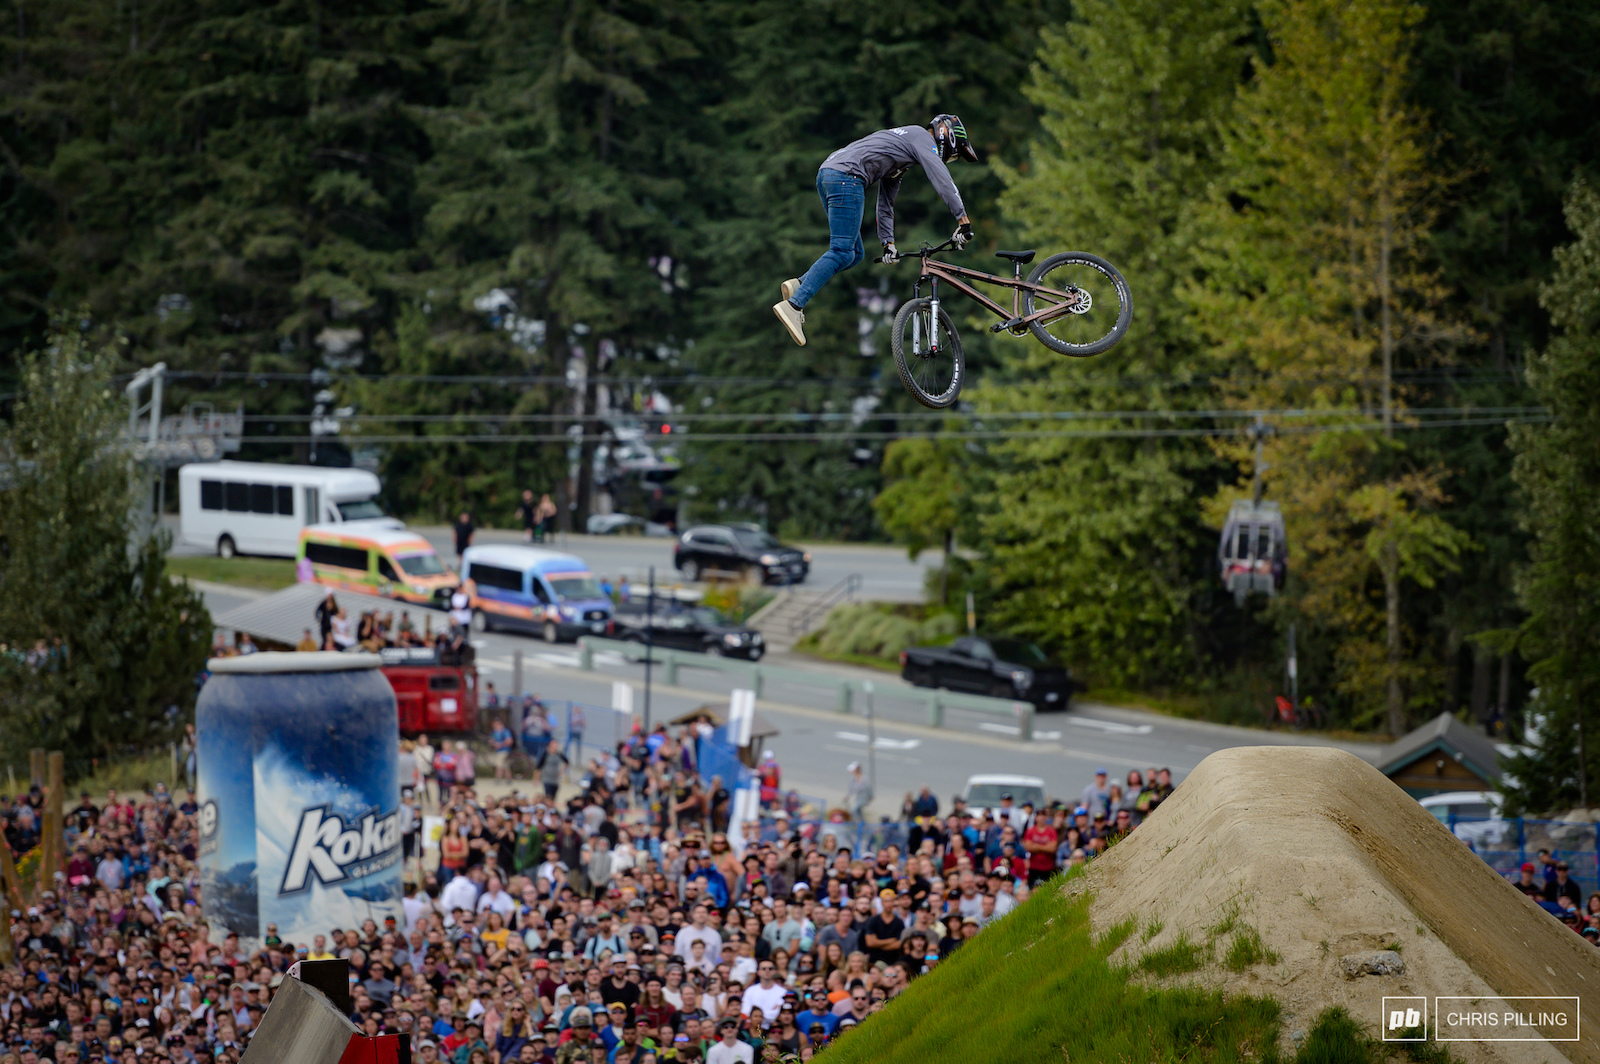 Max Fredriksson double tailwhip.